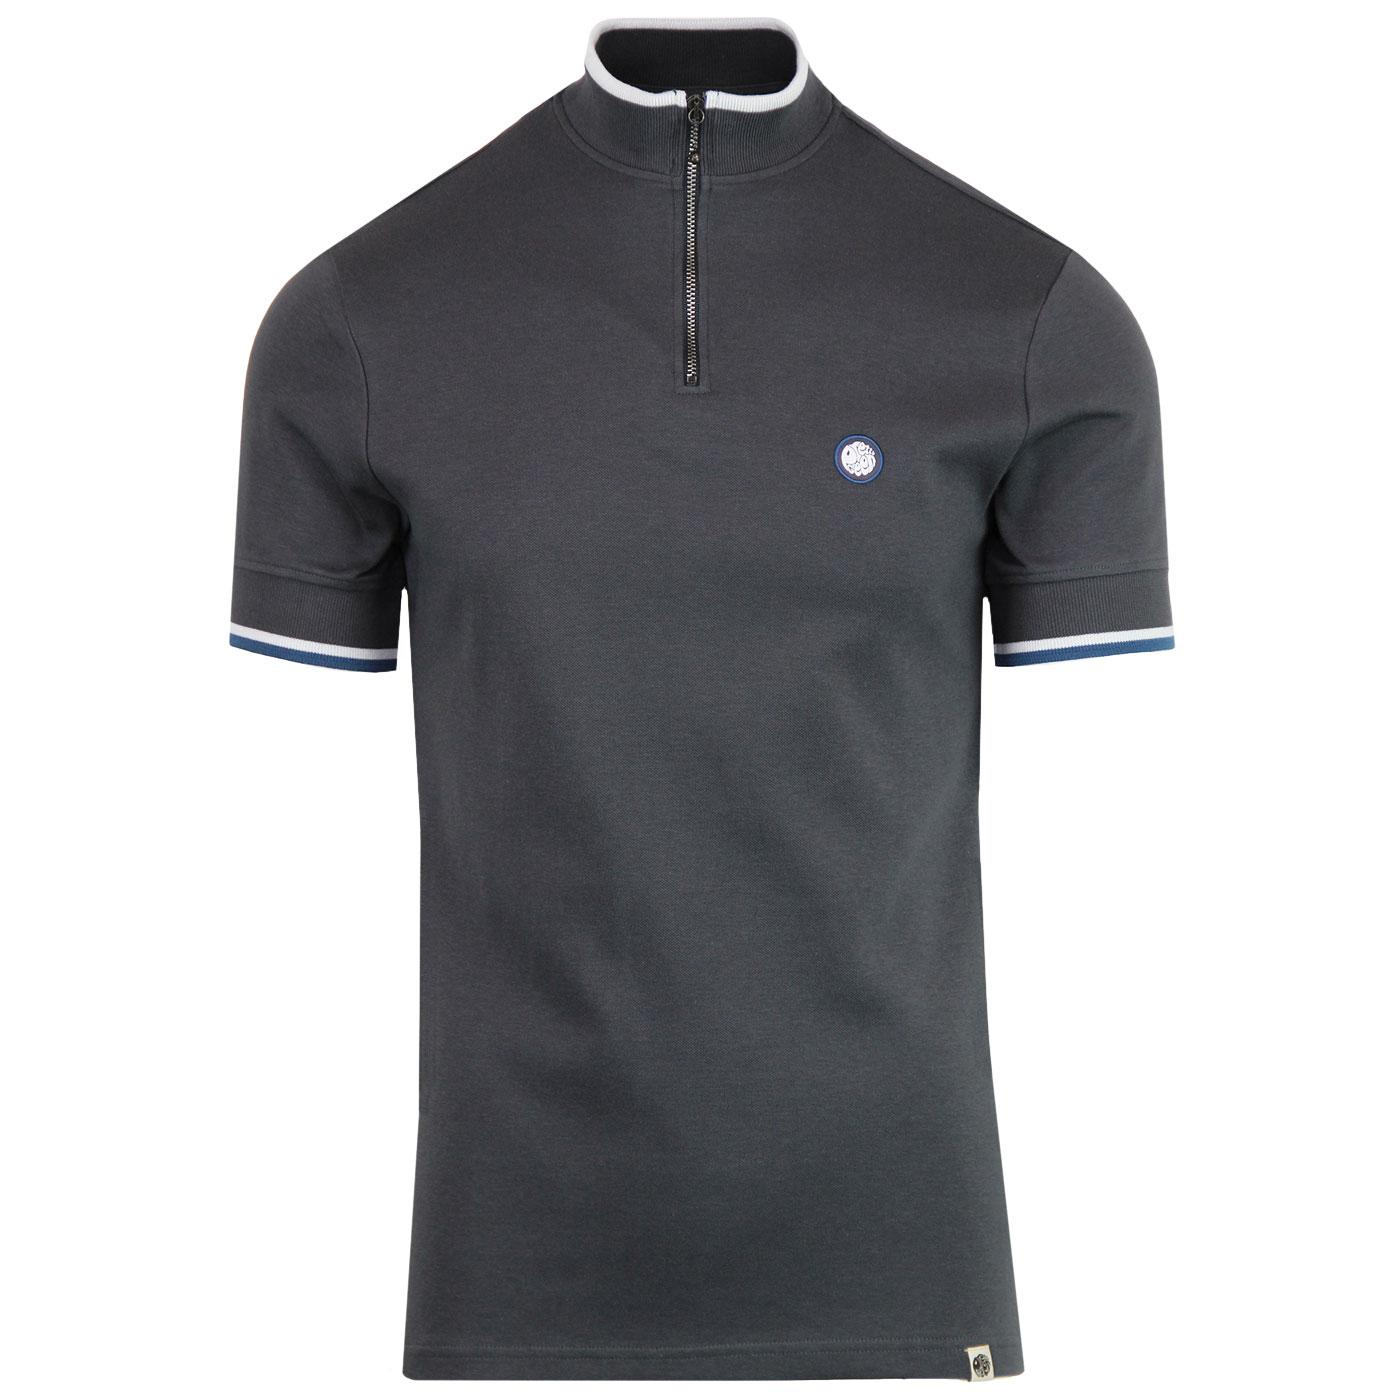 PRETTY GREEN Retro Mod Zip Neck Cycling Top (Grey)